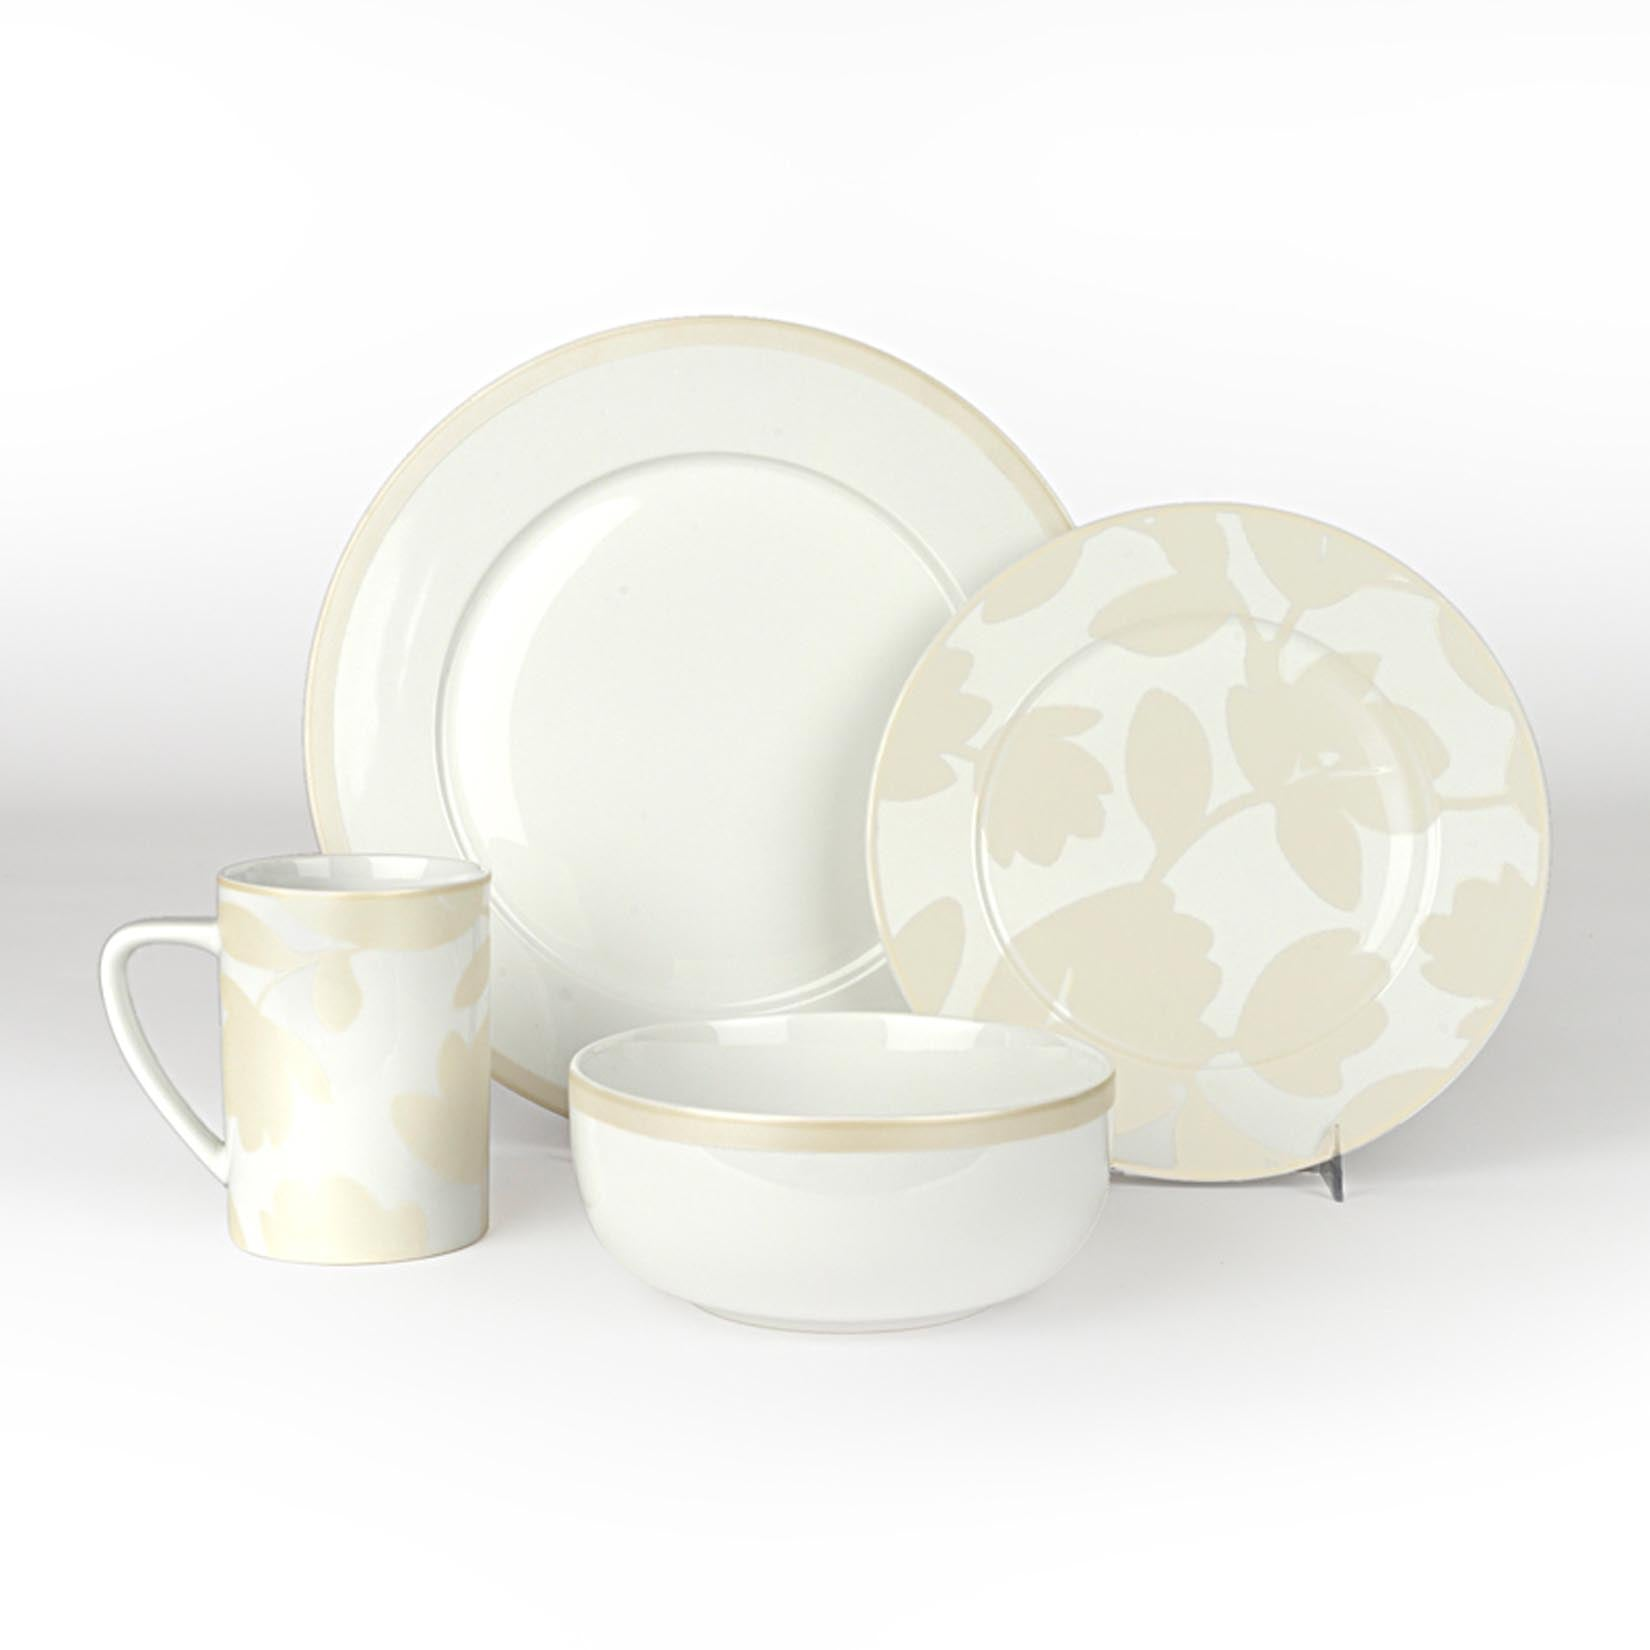 Pearl & White - Flirty Floral 4 Piece Place Setting